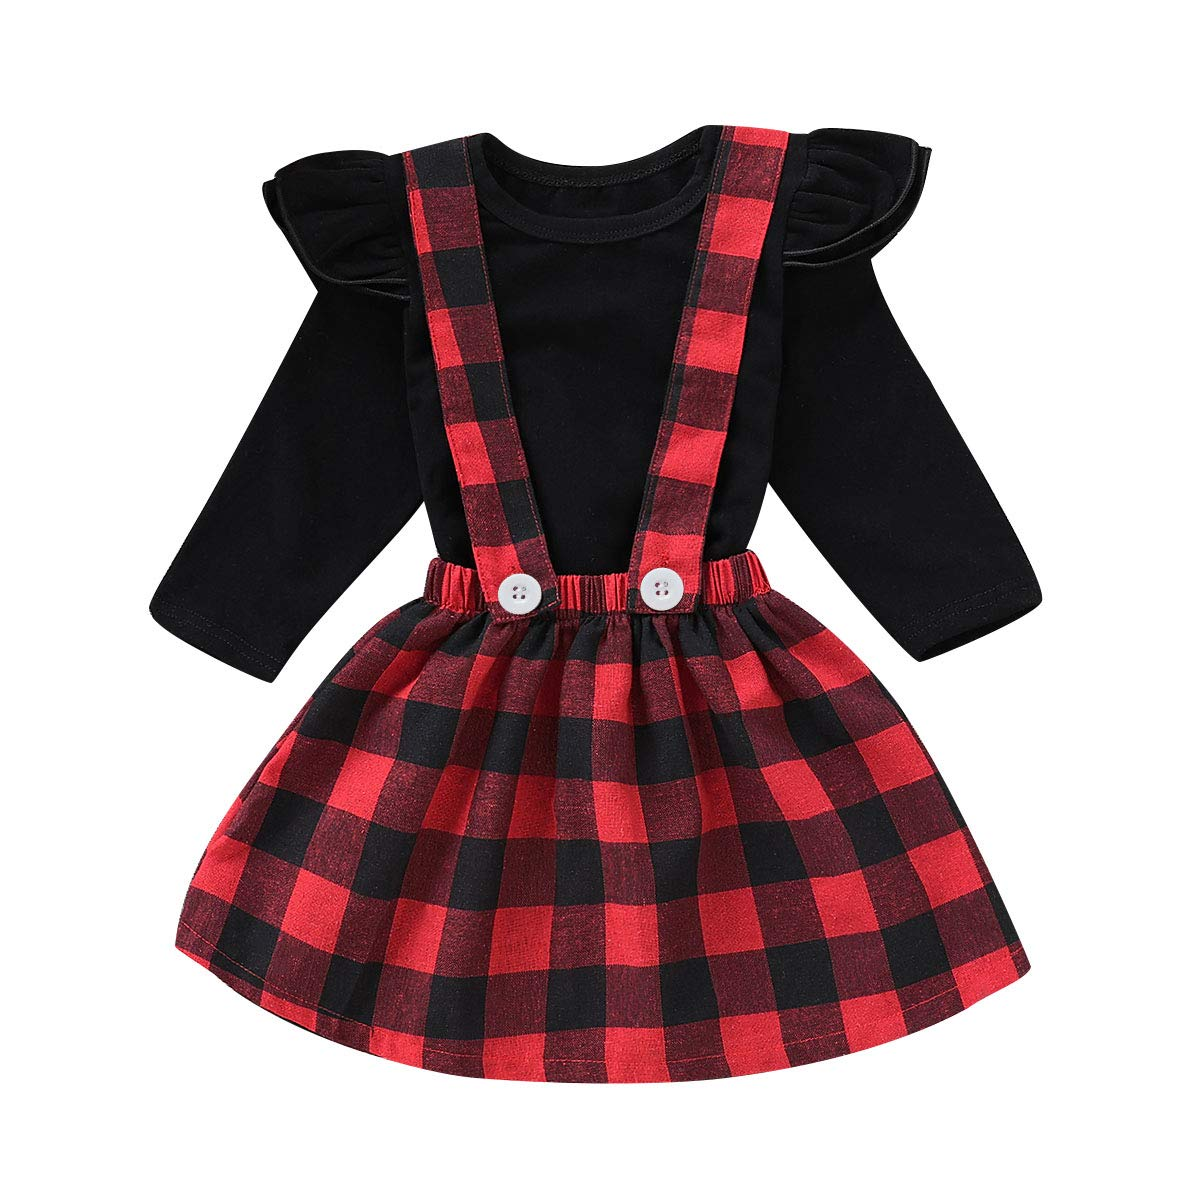 Tianhaik Baby Toddler Girls Ruffles Sleeve Outfits Solid Tops Suspender Skirt Overall Set